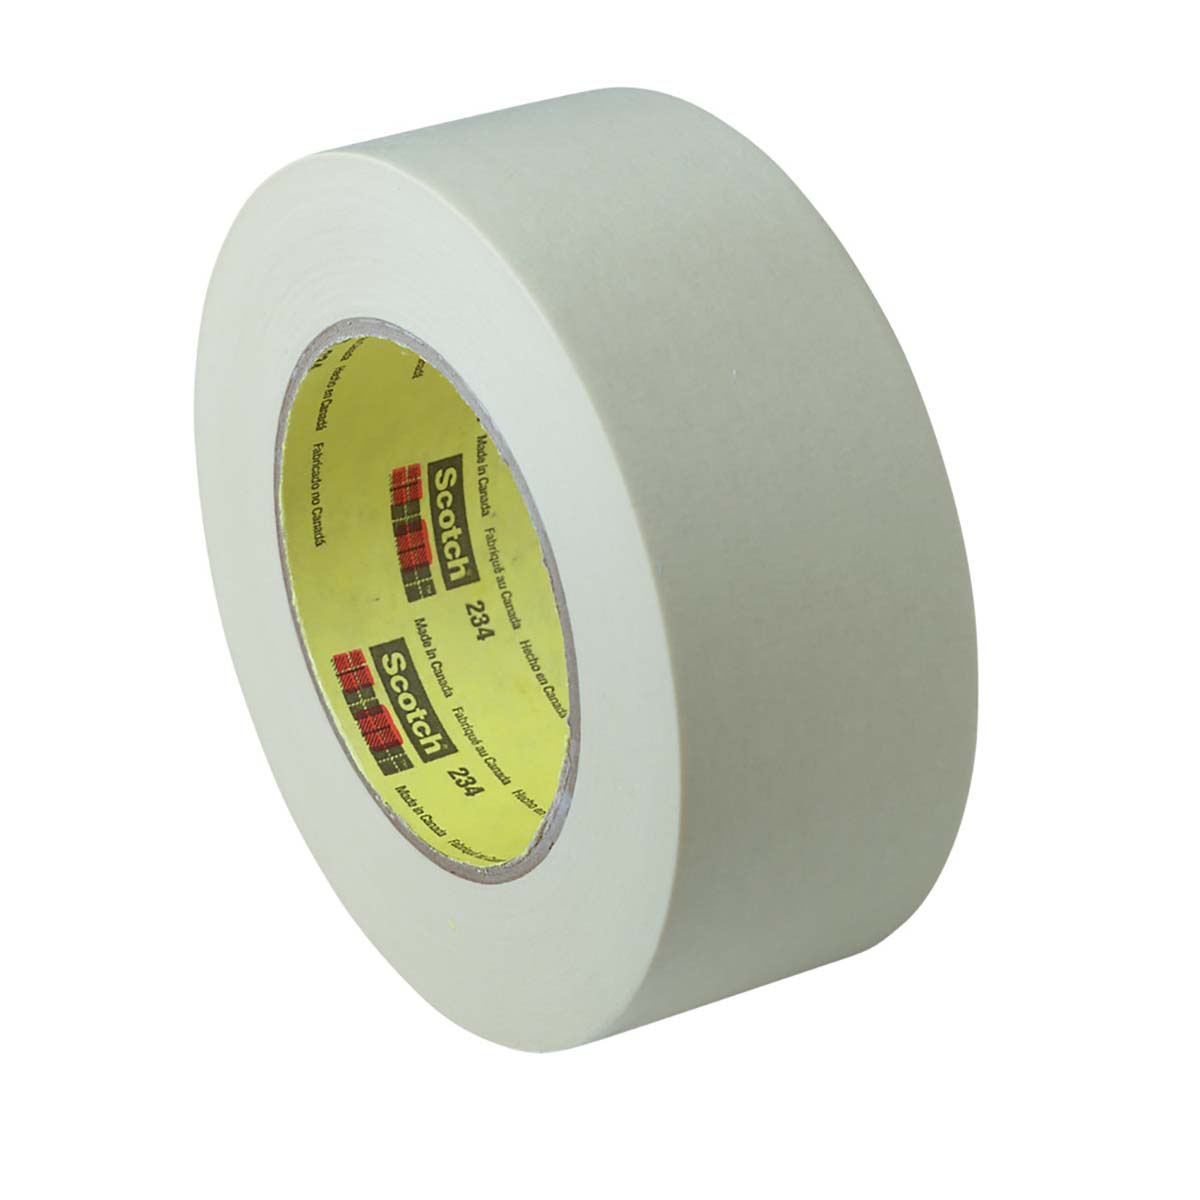 3M General Purpose Masking Tape 234 Tan, 24 mm x 55 m 5.9 mil, 36 per case Bulk